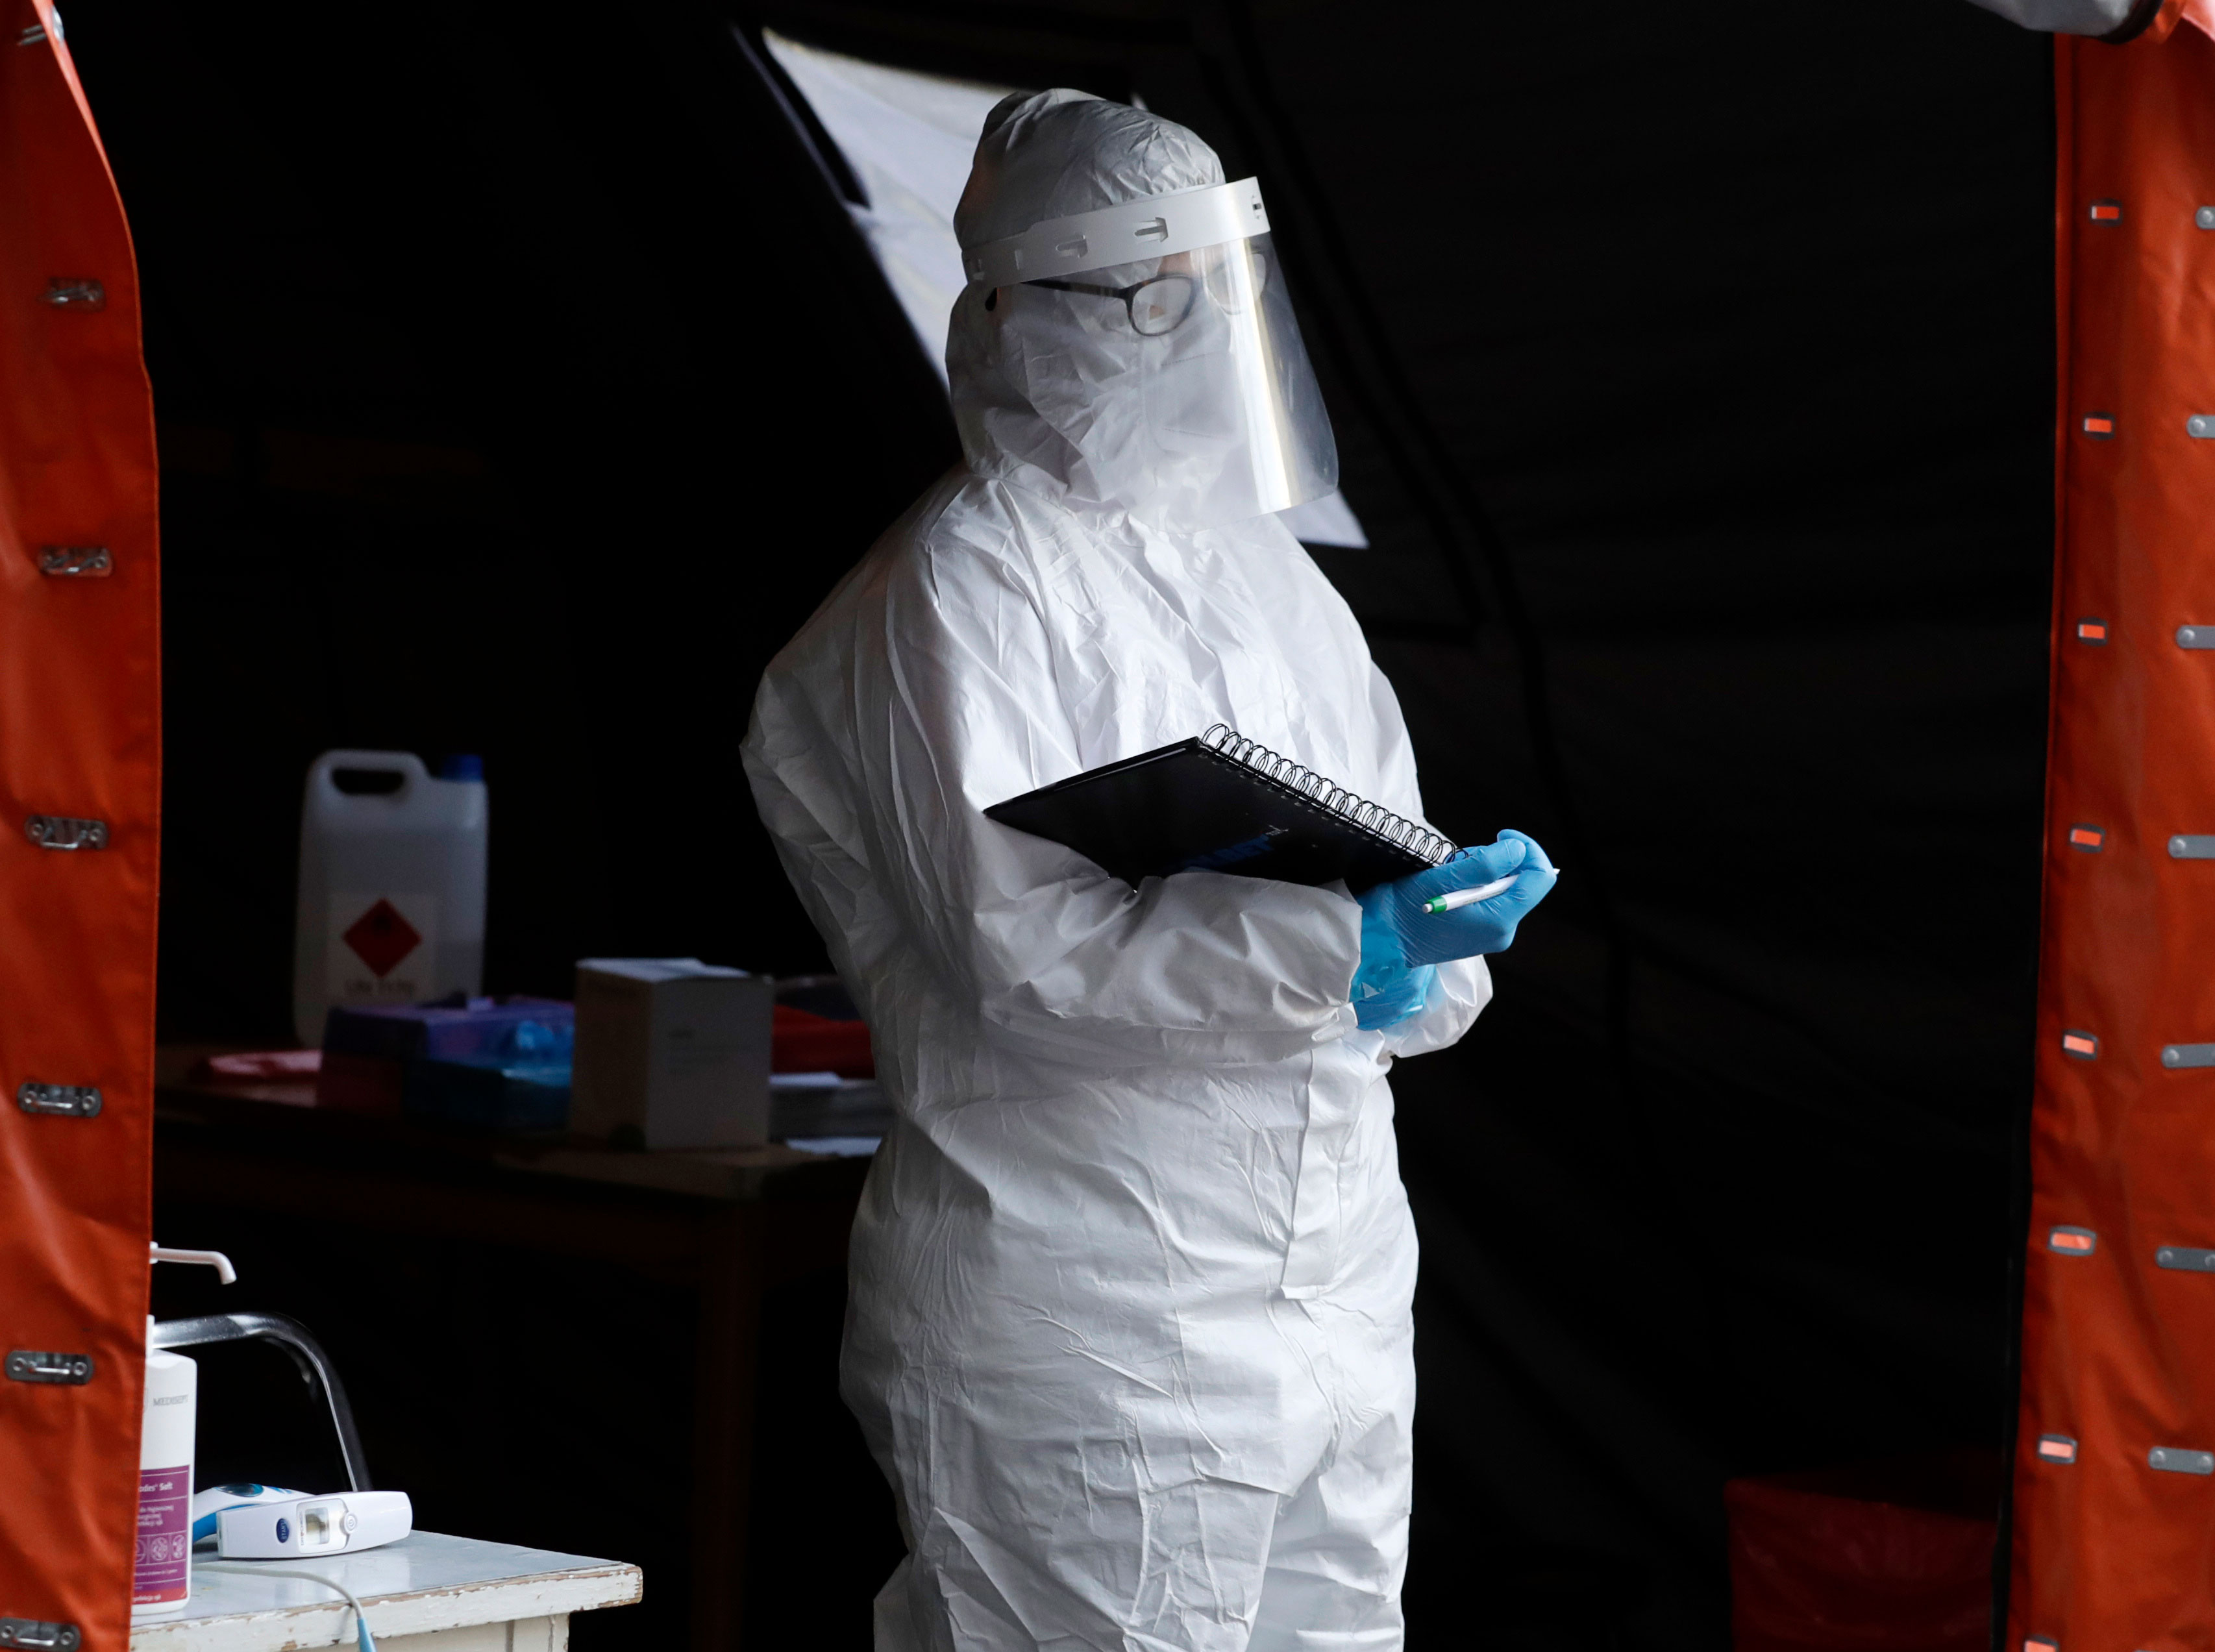 A medical worker in Warsaw, Poland, waits at a Covid-19 testing center on October 22.